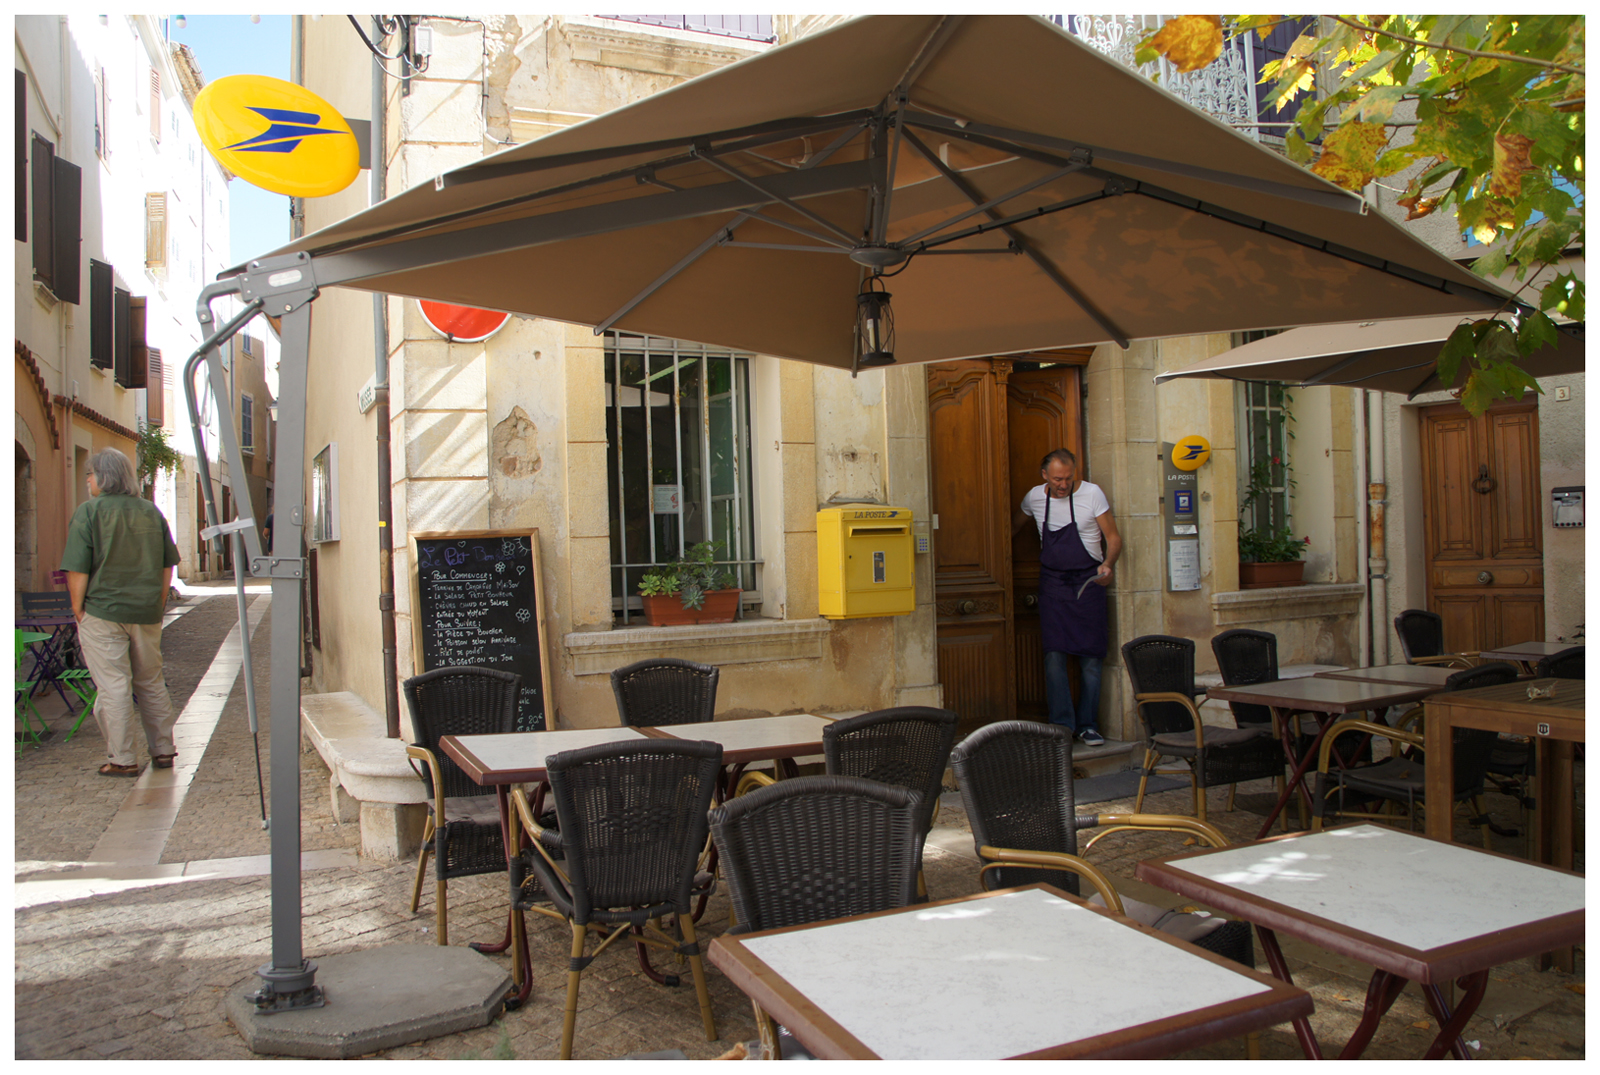 Restaurant Proche Place Edouard Normand Nantes